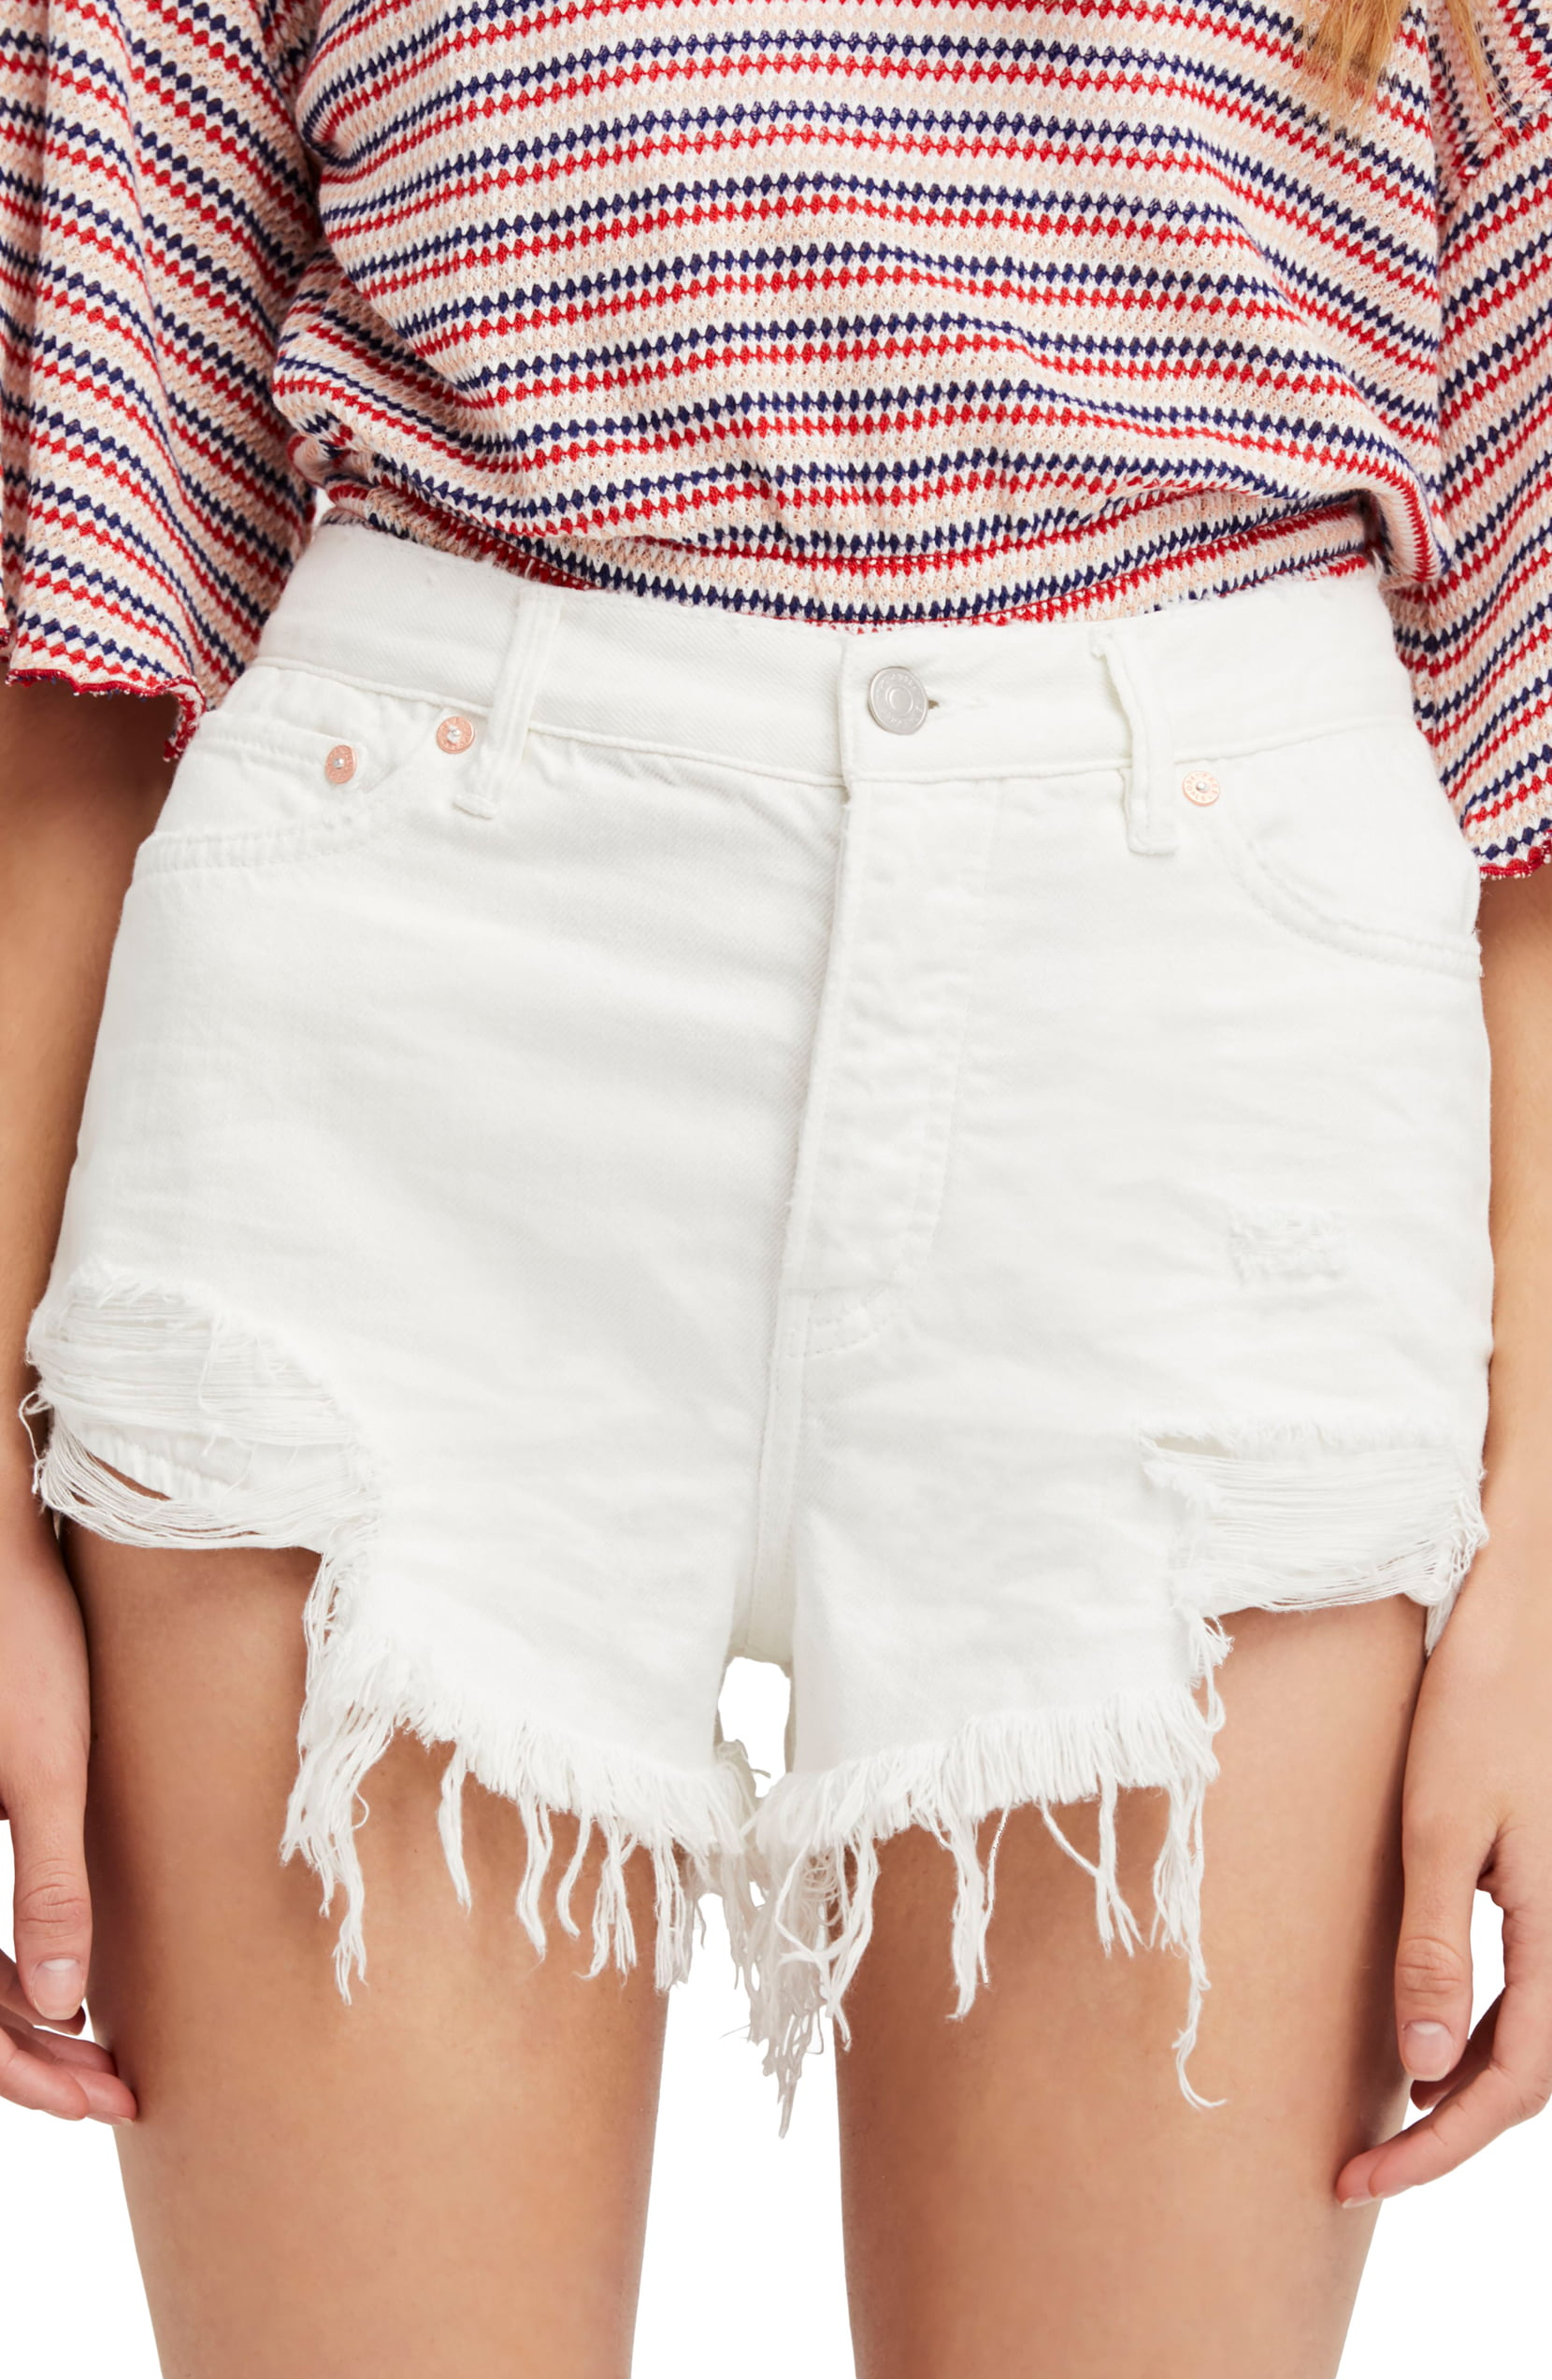 Free-People-Spring-White-Women-039-s-Size-27-High-Rise-Ripped-Denim-Shorts-68-406